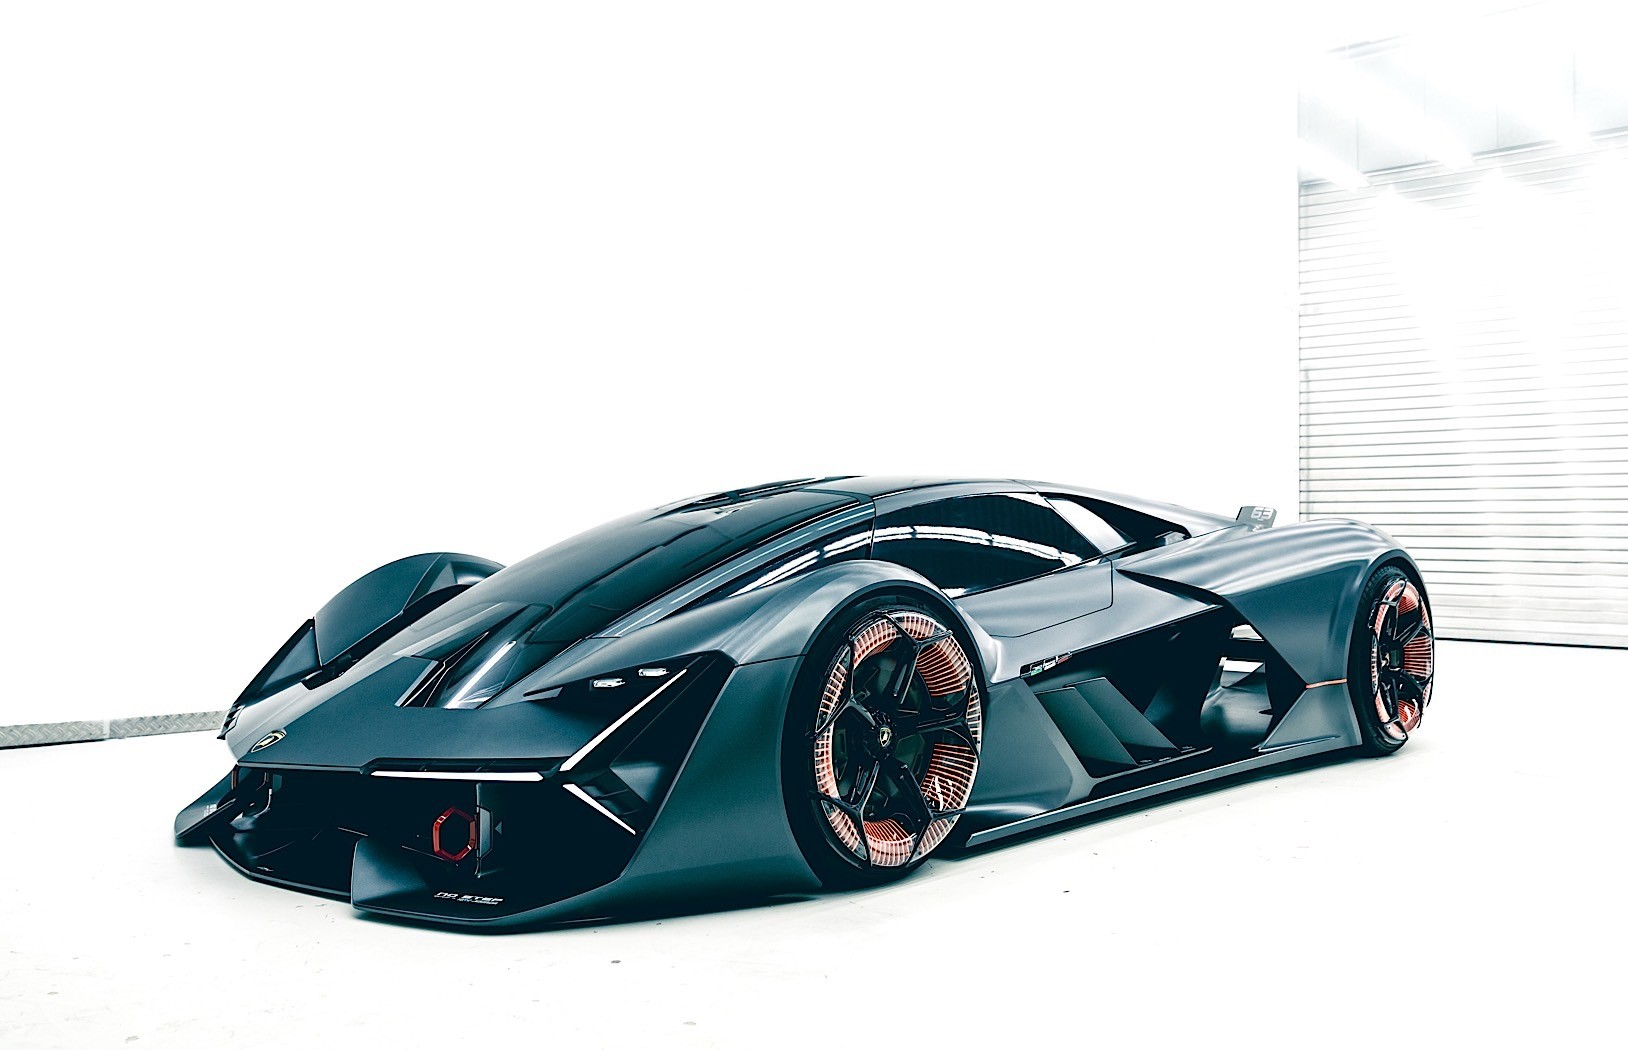 Porsche Spe Platform Confirmed For Electric Sports Cars And